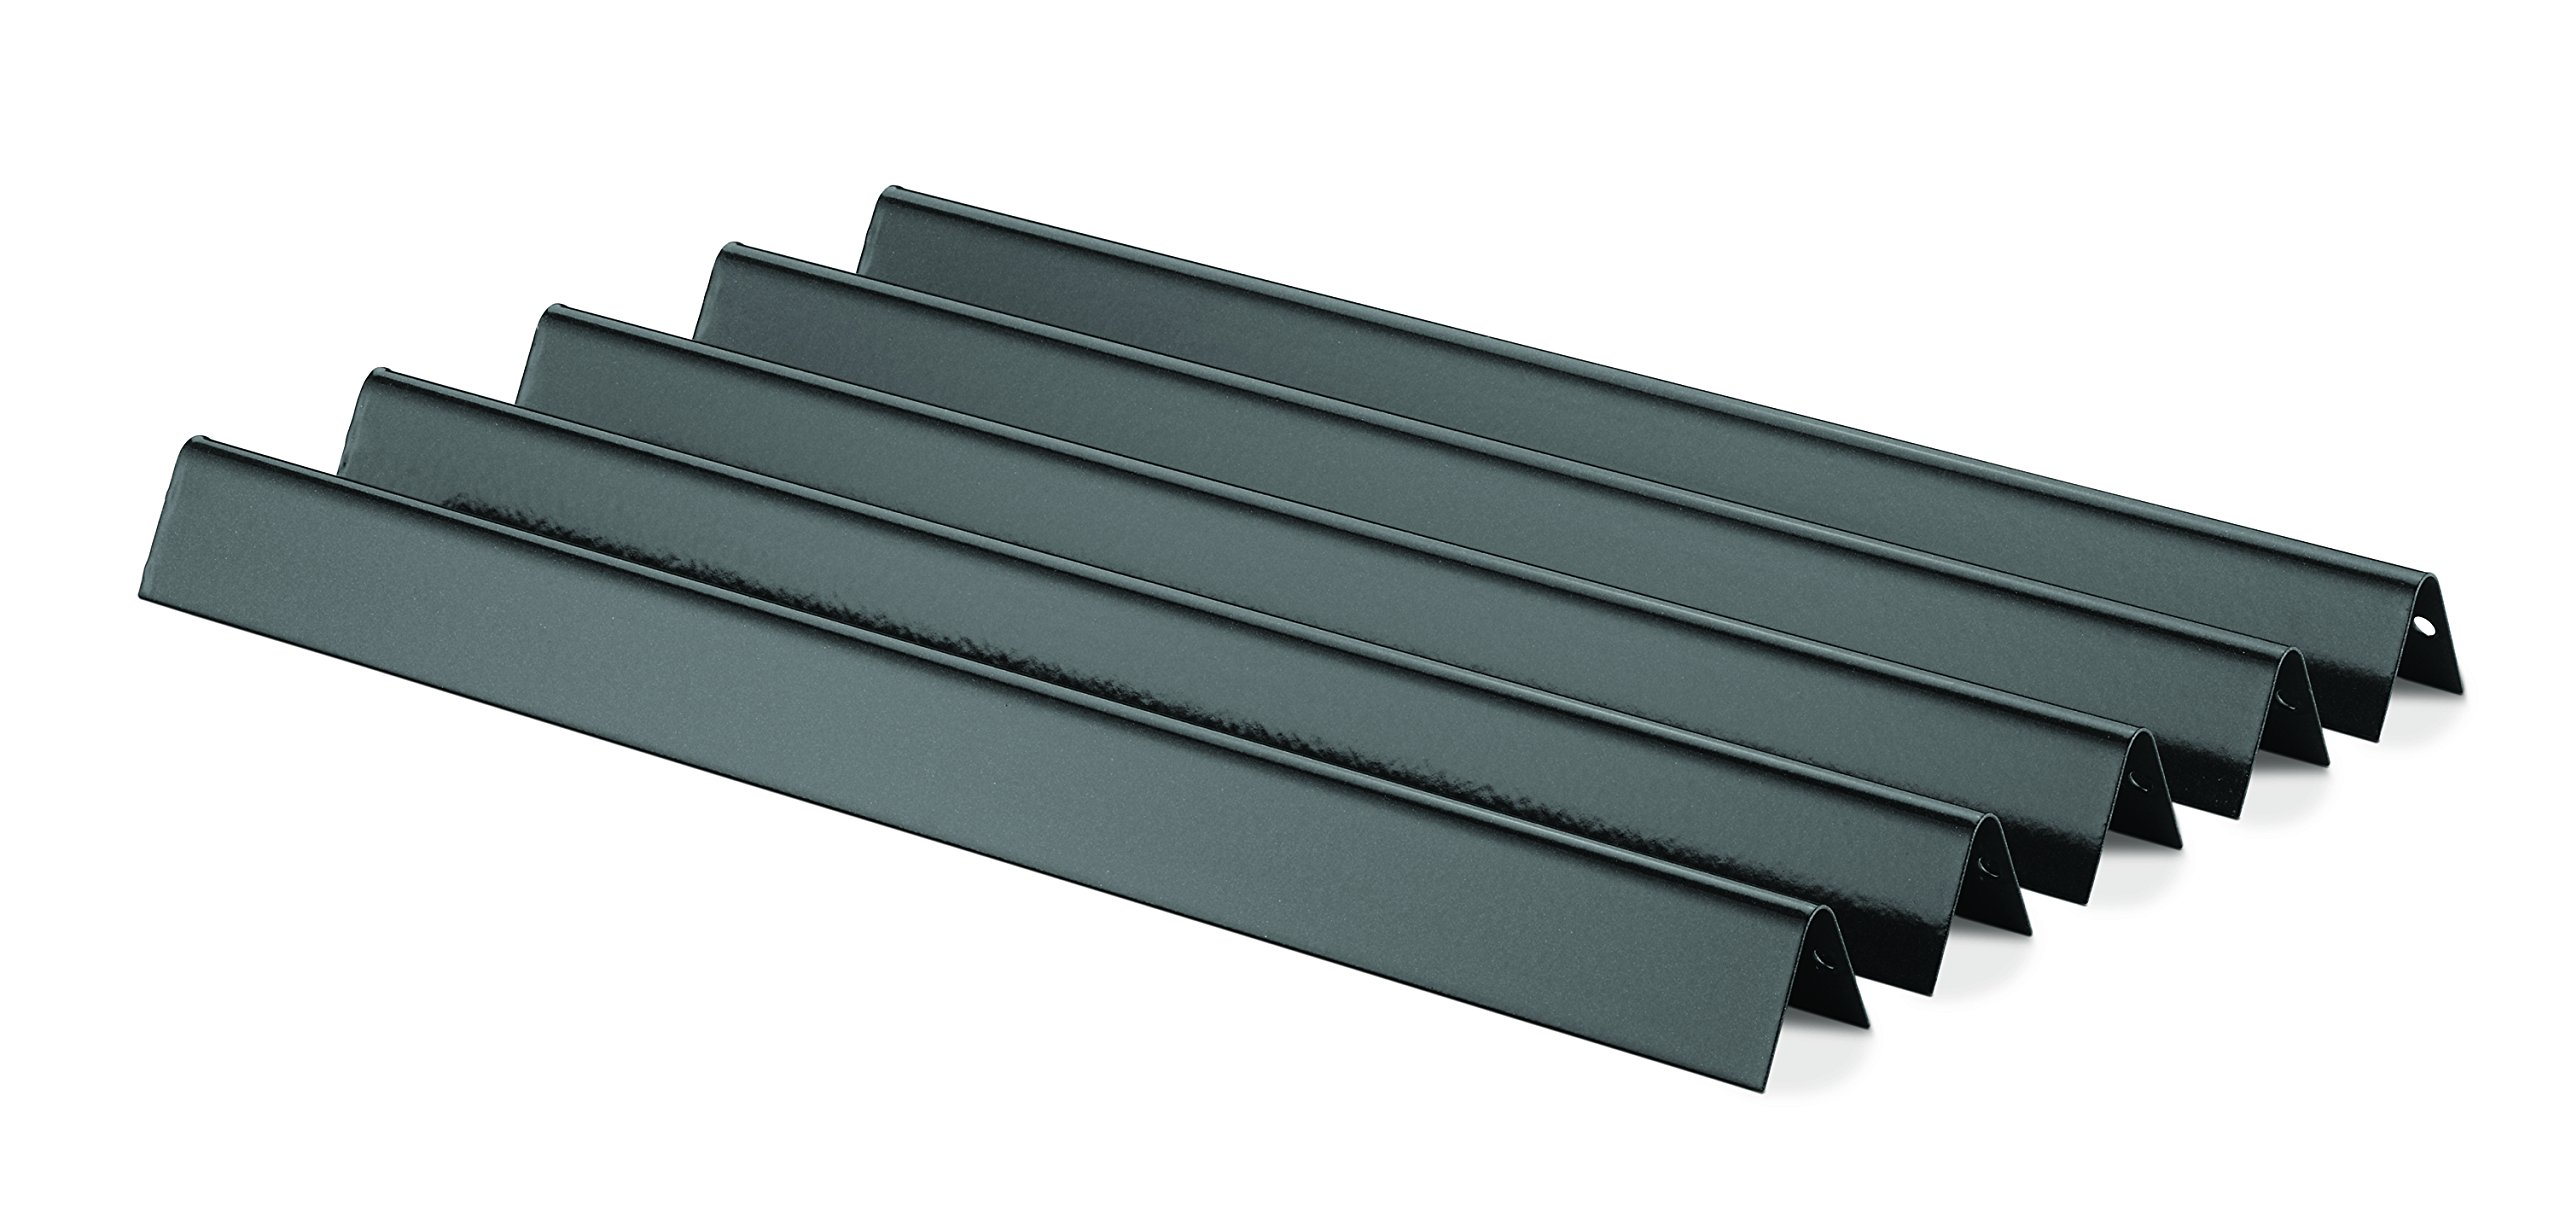 Weber 7534  Gas Grill Flavorizer Bars (21.5 x 1.7 x 1.7) by Weber